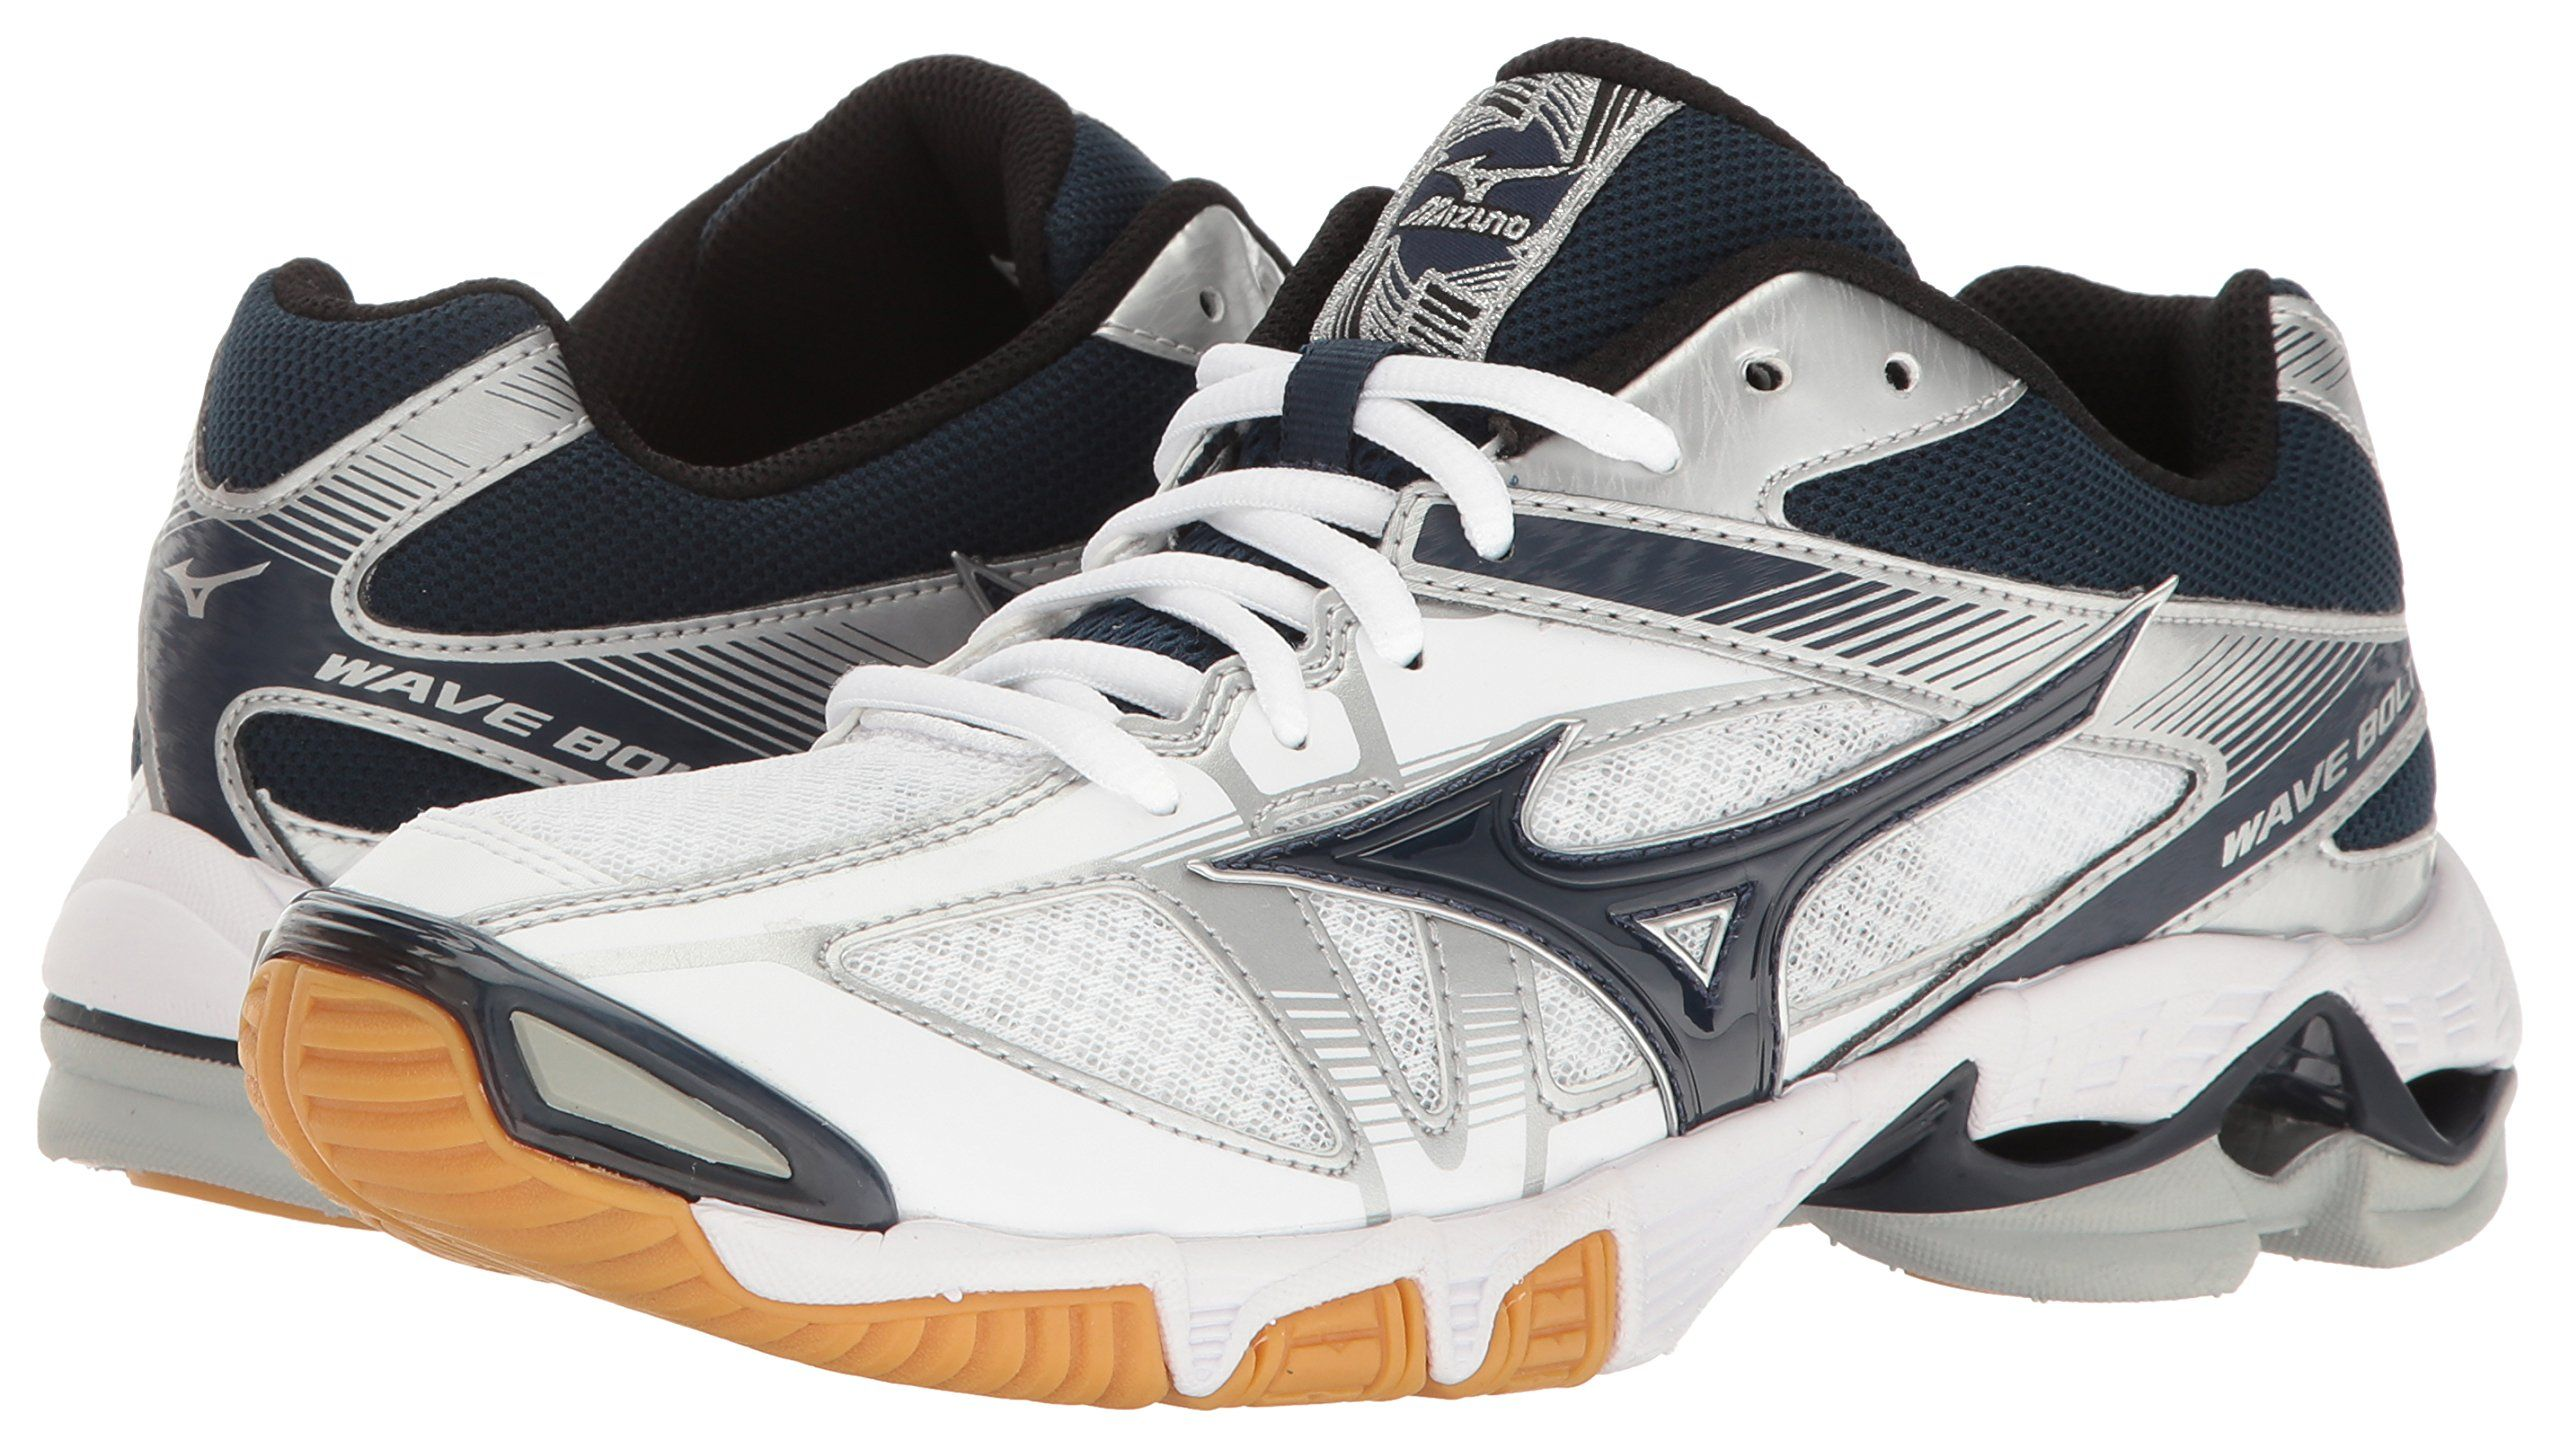 Mizuno Women S Wave Bolt 6 Volleyball Shoes Ad Wave Women Mizuno Shoes In 2020 Volleyball Shoes Mizuno Shoes